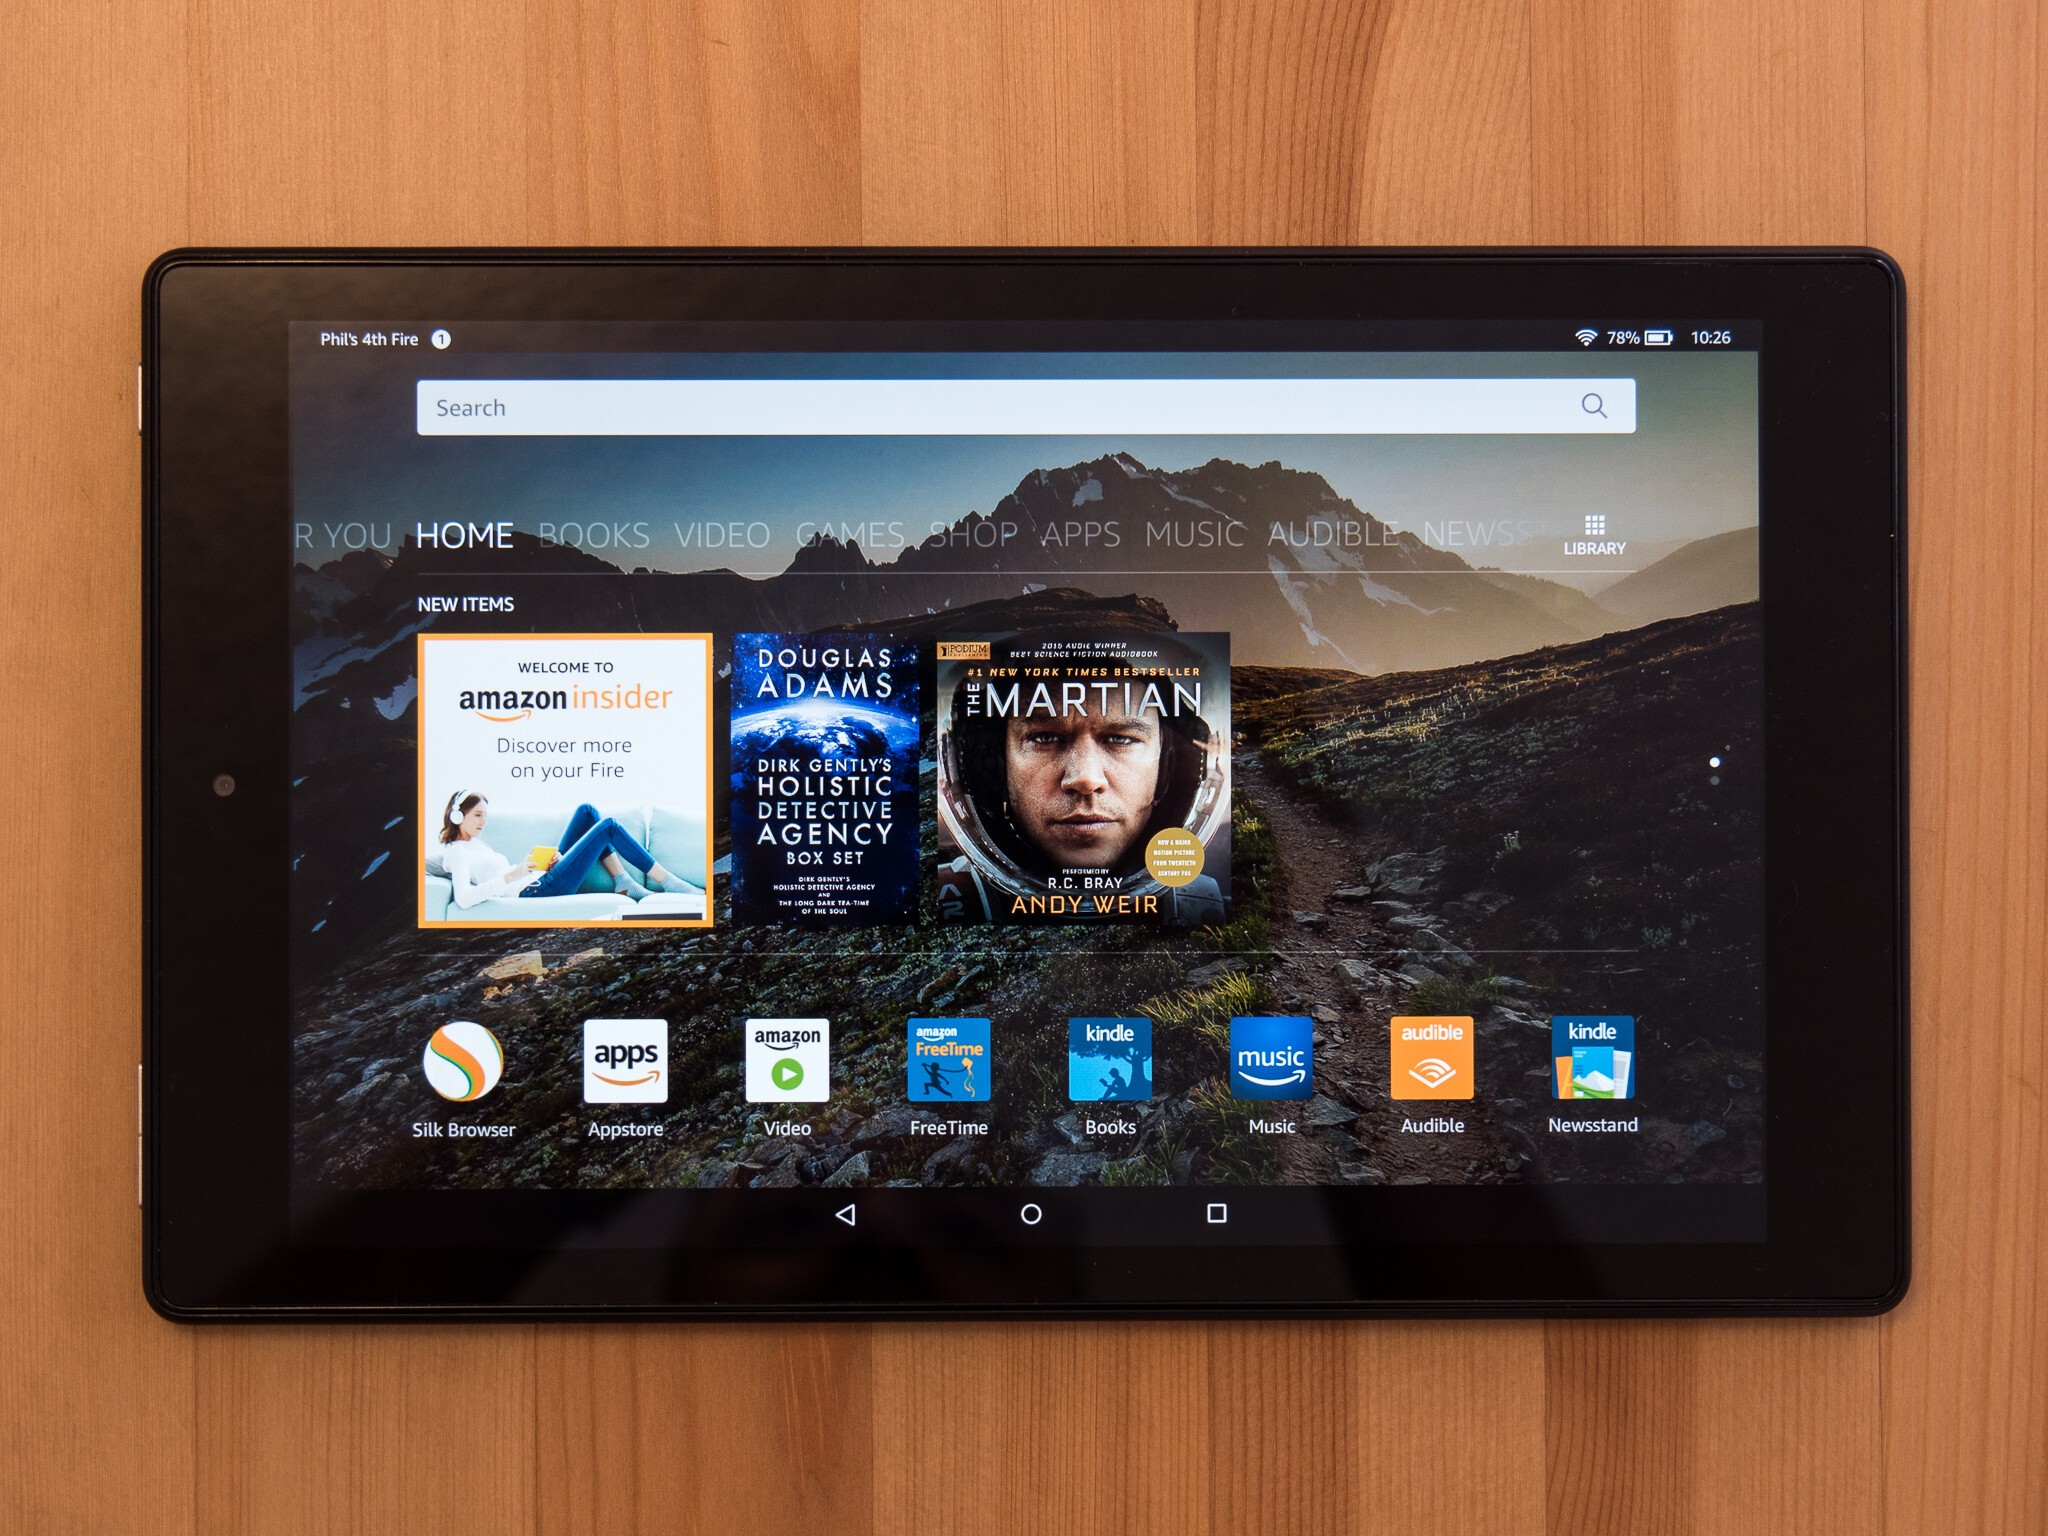 The Amazon Fire HD 10 tablet is too good to be true at just $99 for